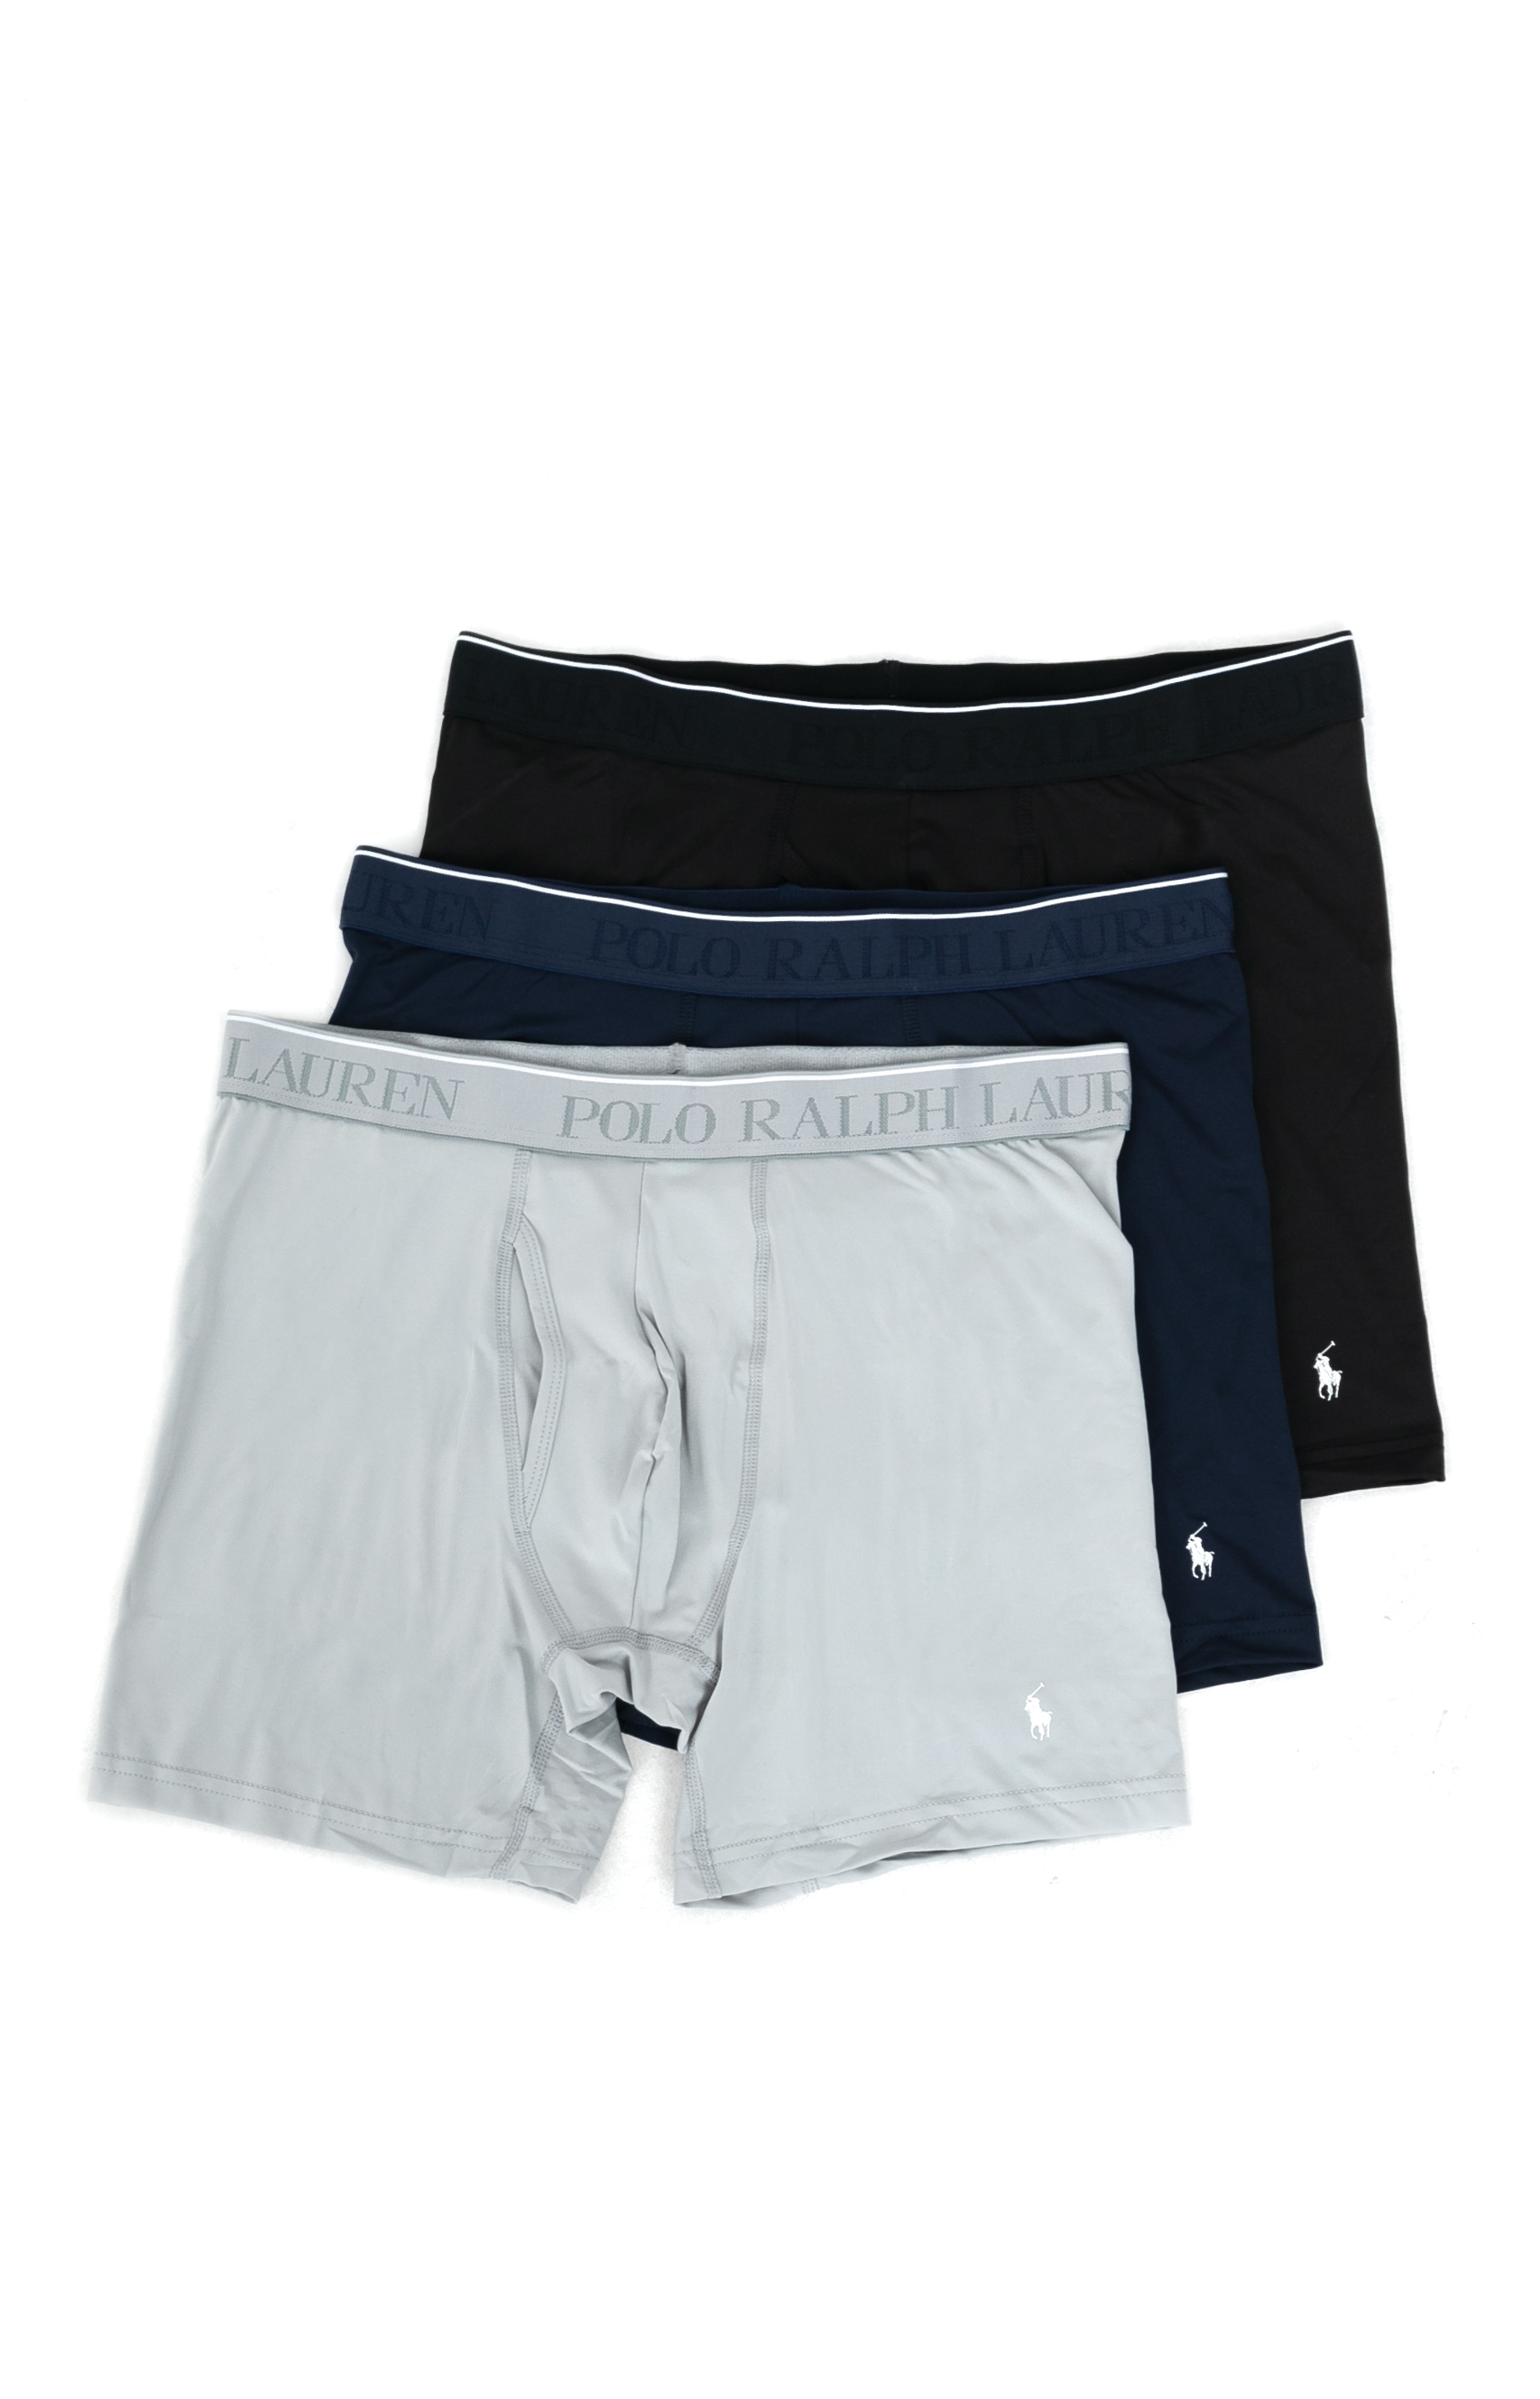 3 Pack Microfiber Boxer Briefs - Black/Navy/Grey